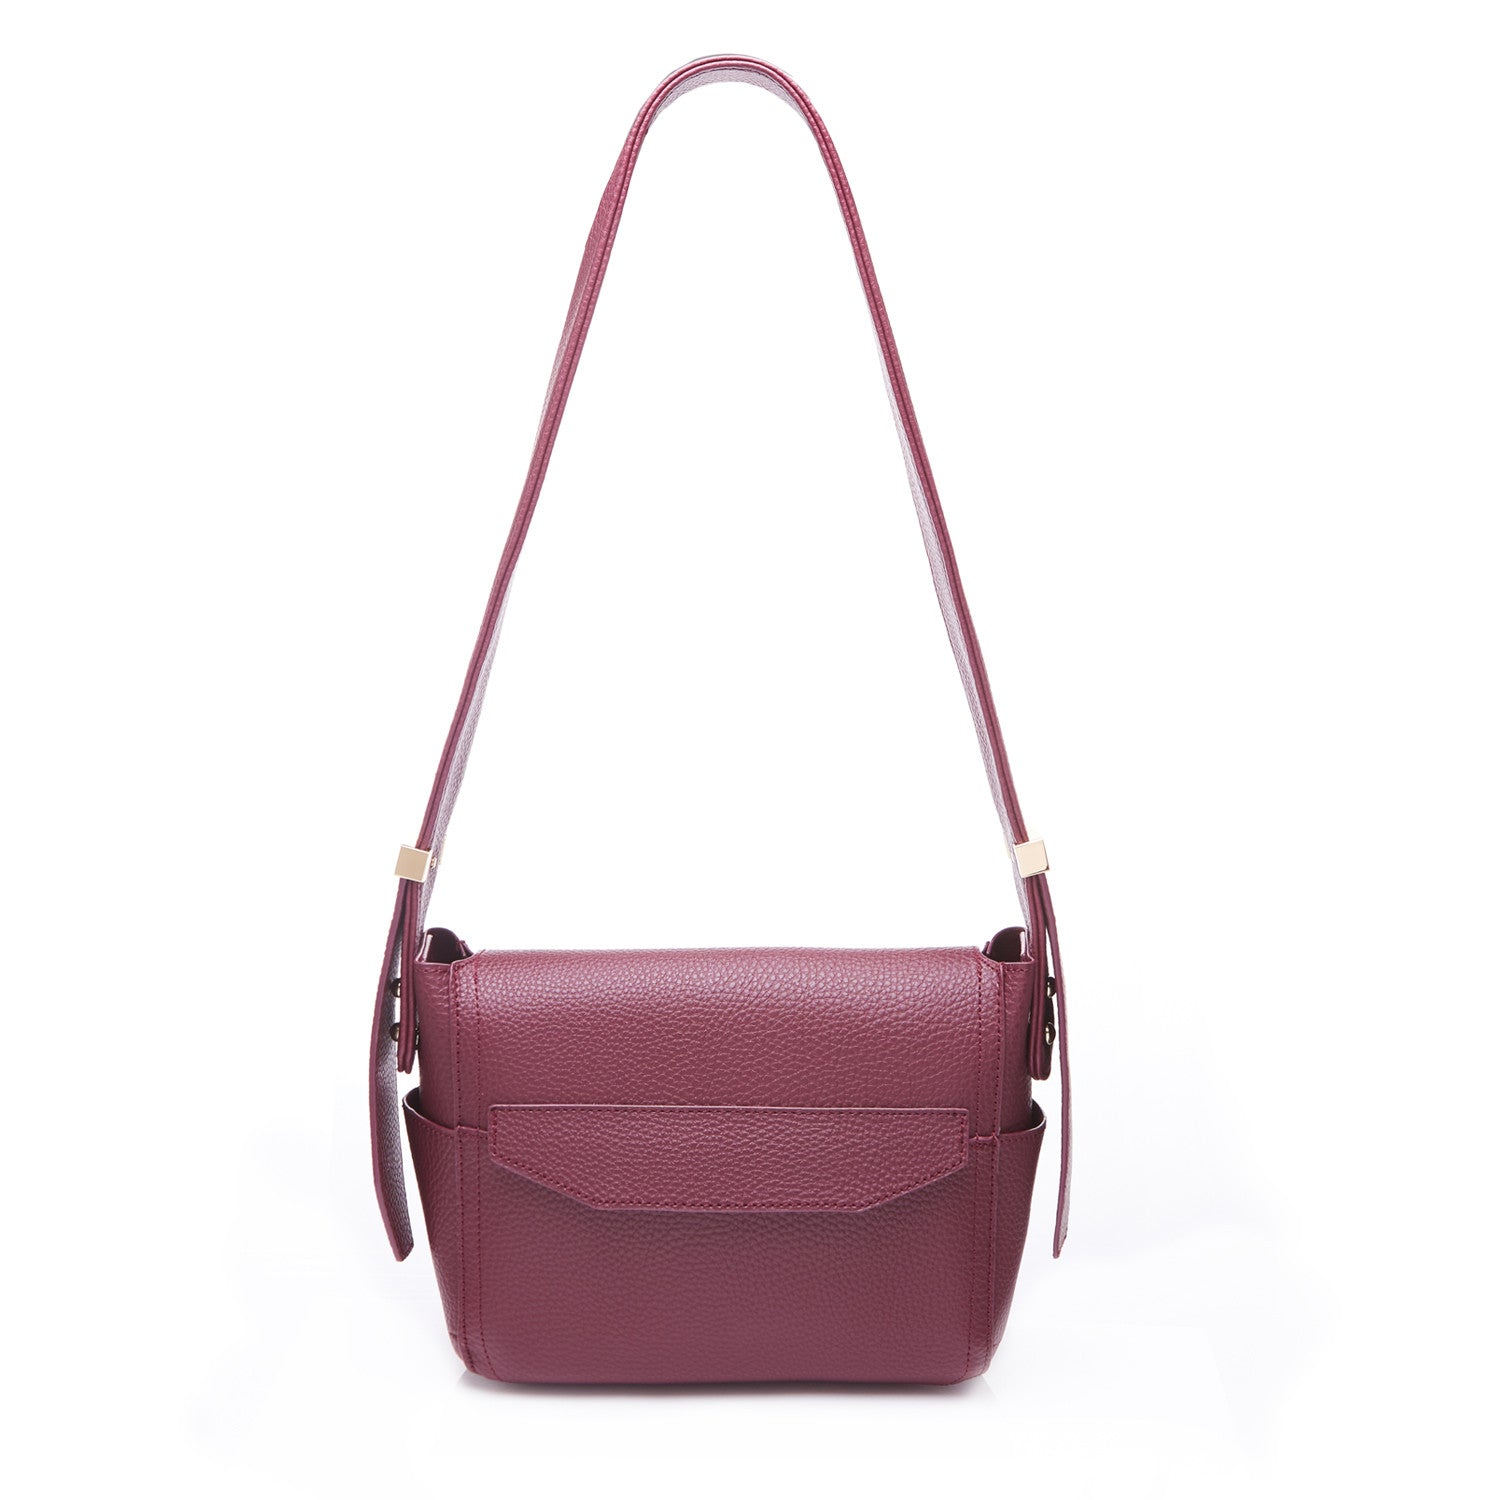 RIBAG MINI - MAROON